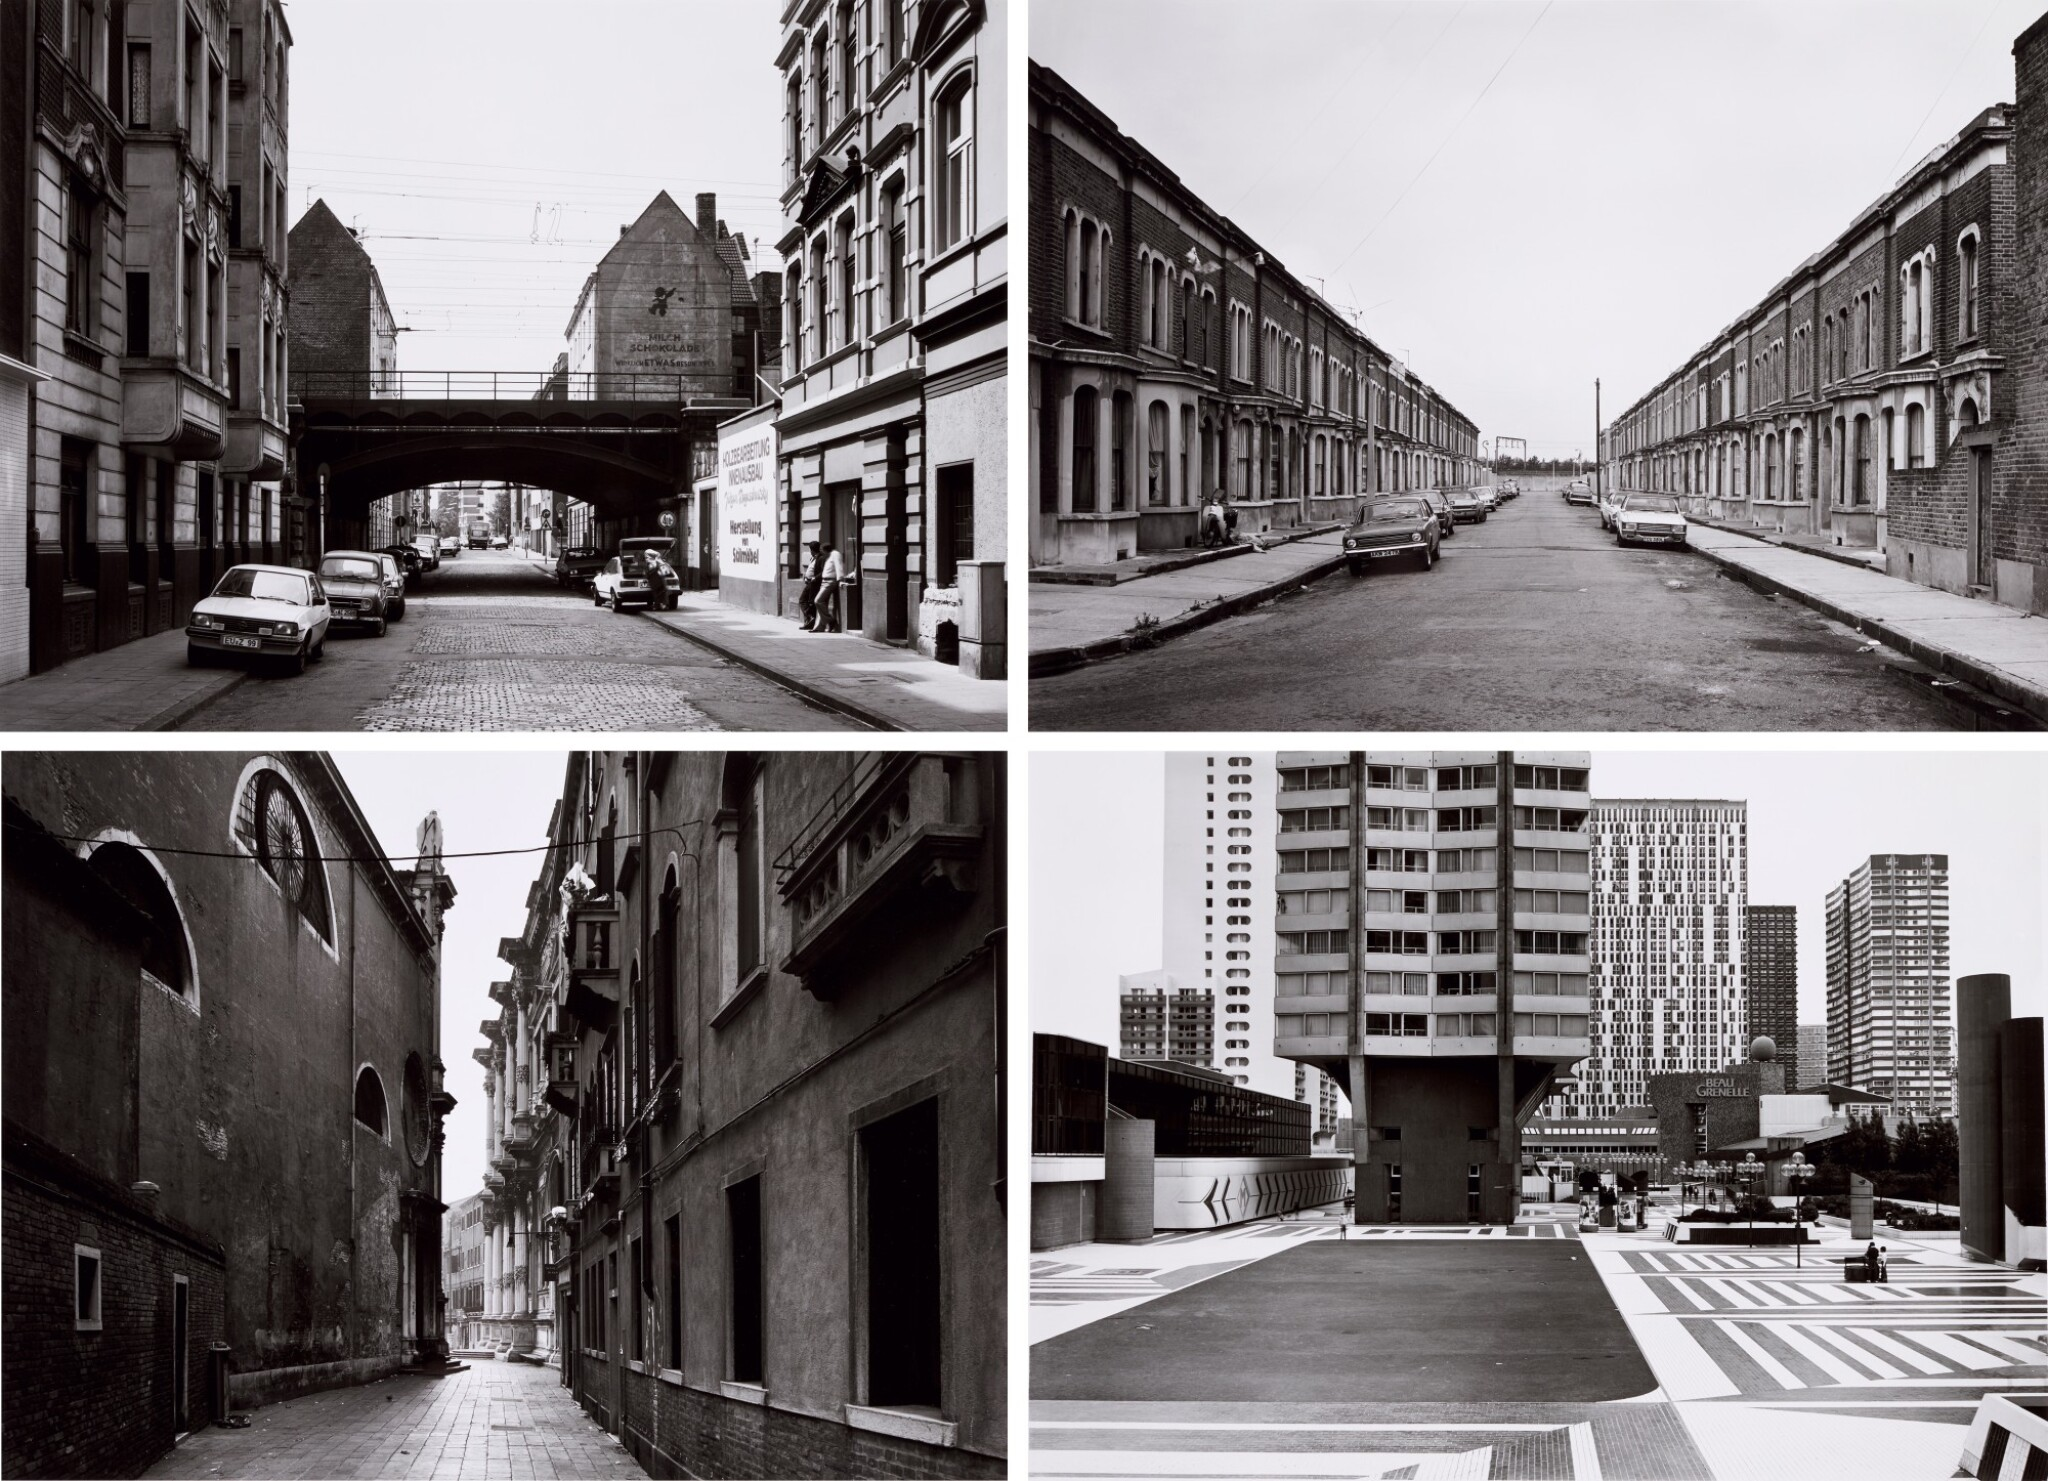 View full screen - View 1 of Lot 36. 'Clinton Road', Murdock Cottages, London, 1977; 'Panorama 2', Beaugrenelle, Paris, 1979; 'Gereonswall', Koln, 1980; 'Calle Tintoretto', Venezia, 1990.